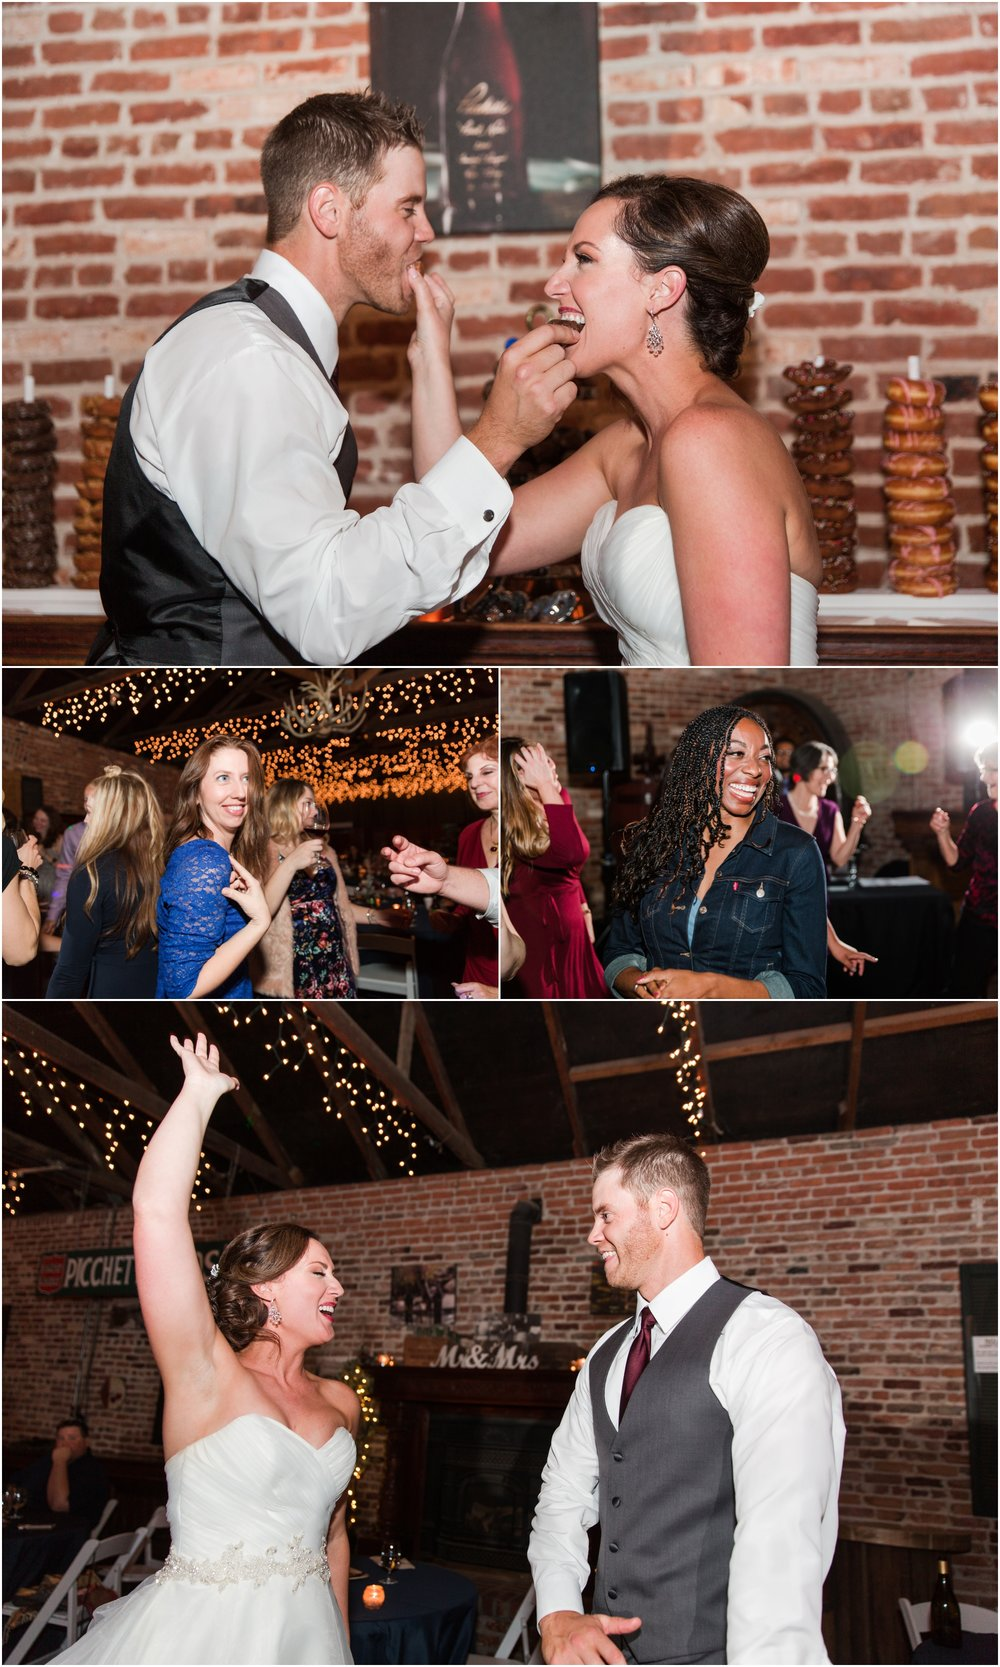 Picchetti Winery wedding pictures by Briana Calderon Photography_0405.jpg